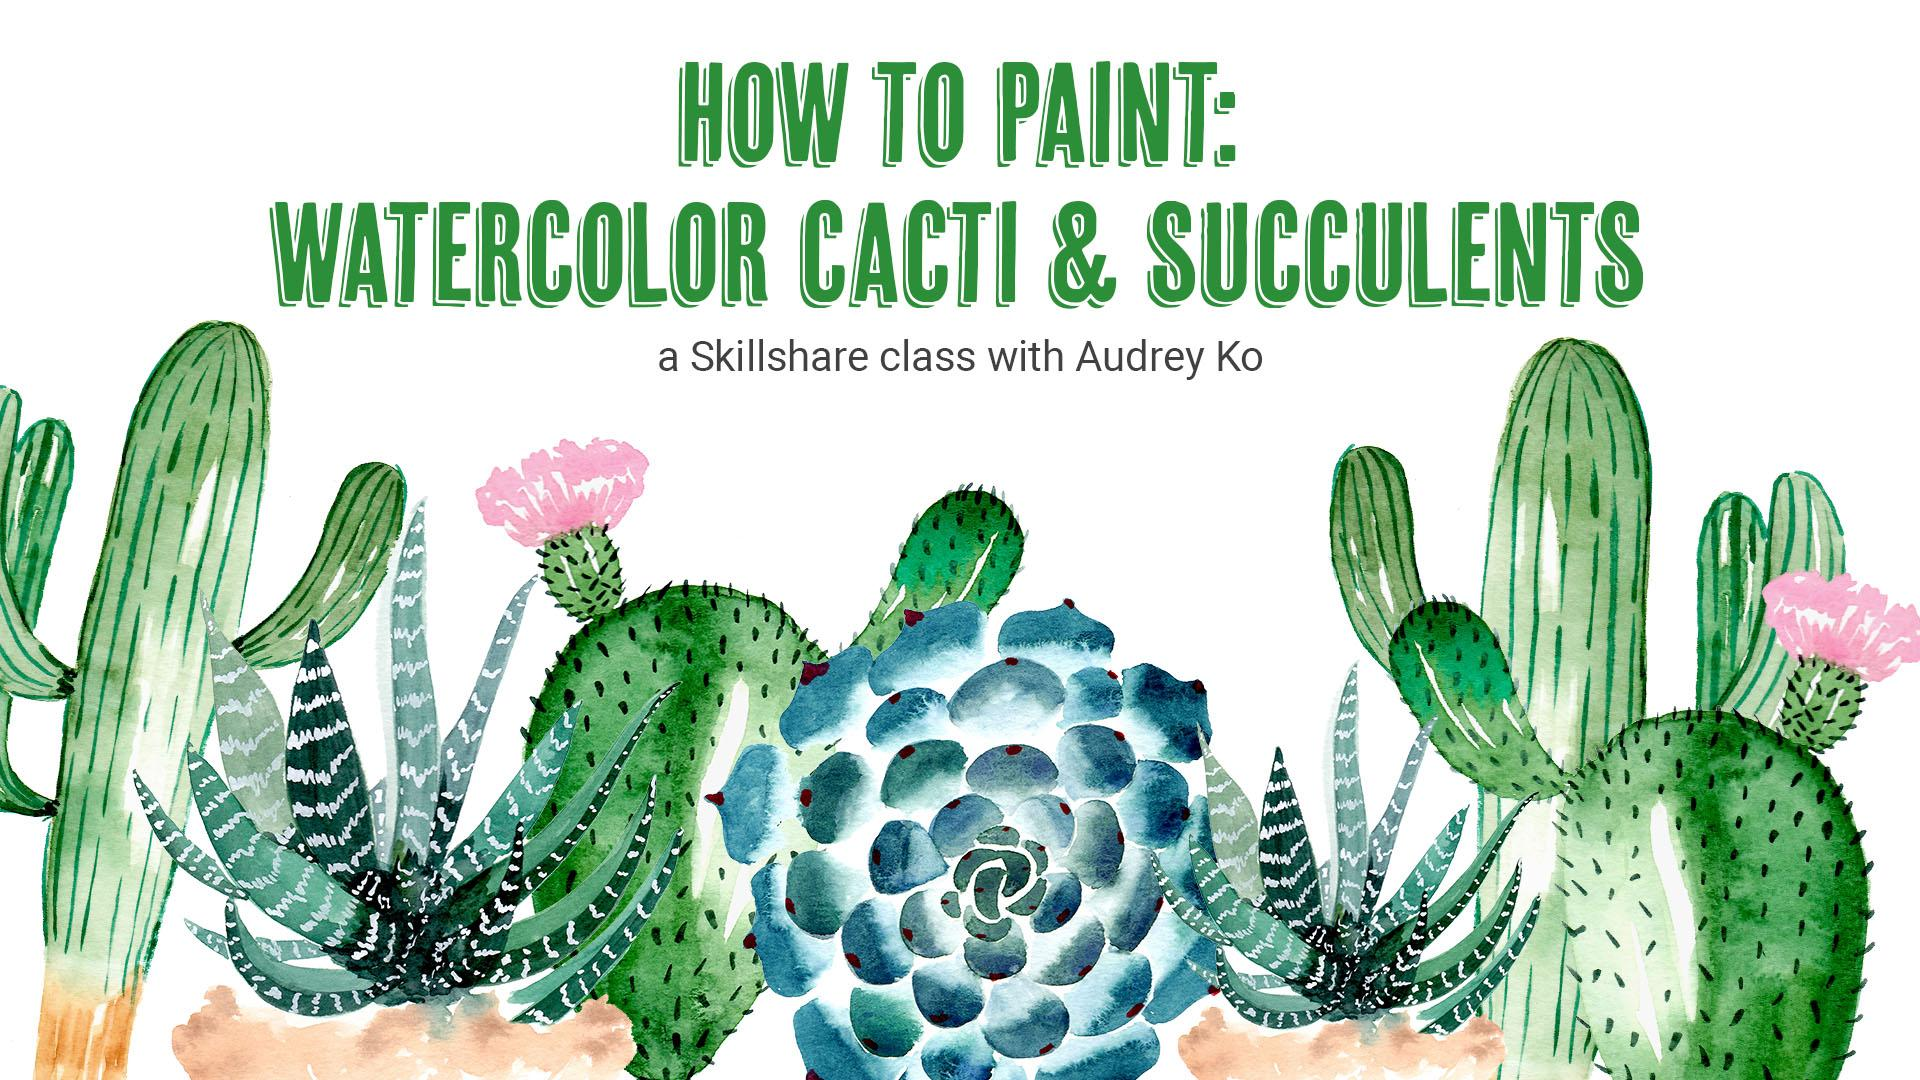 How To Paint Watercolor Cacti Succulents Audrey Ra Skillshare